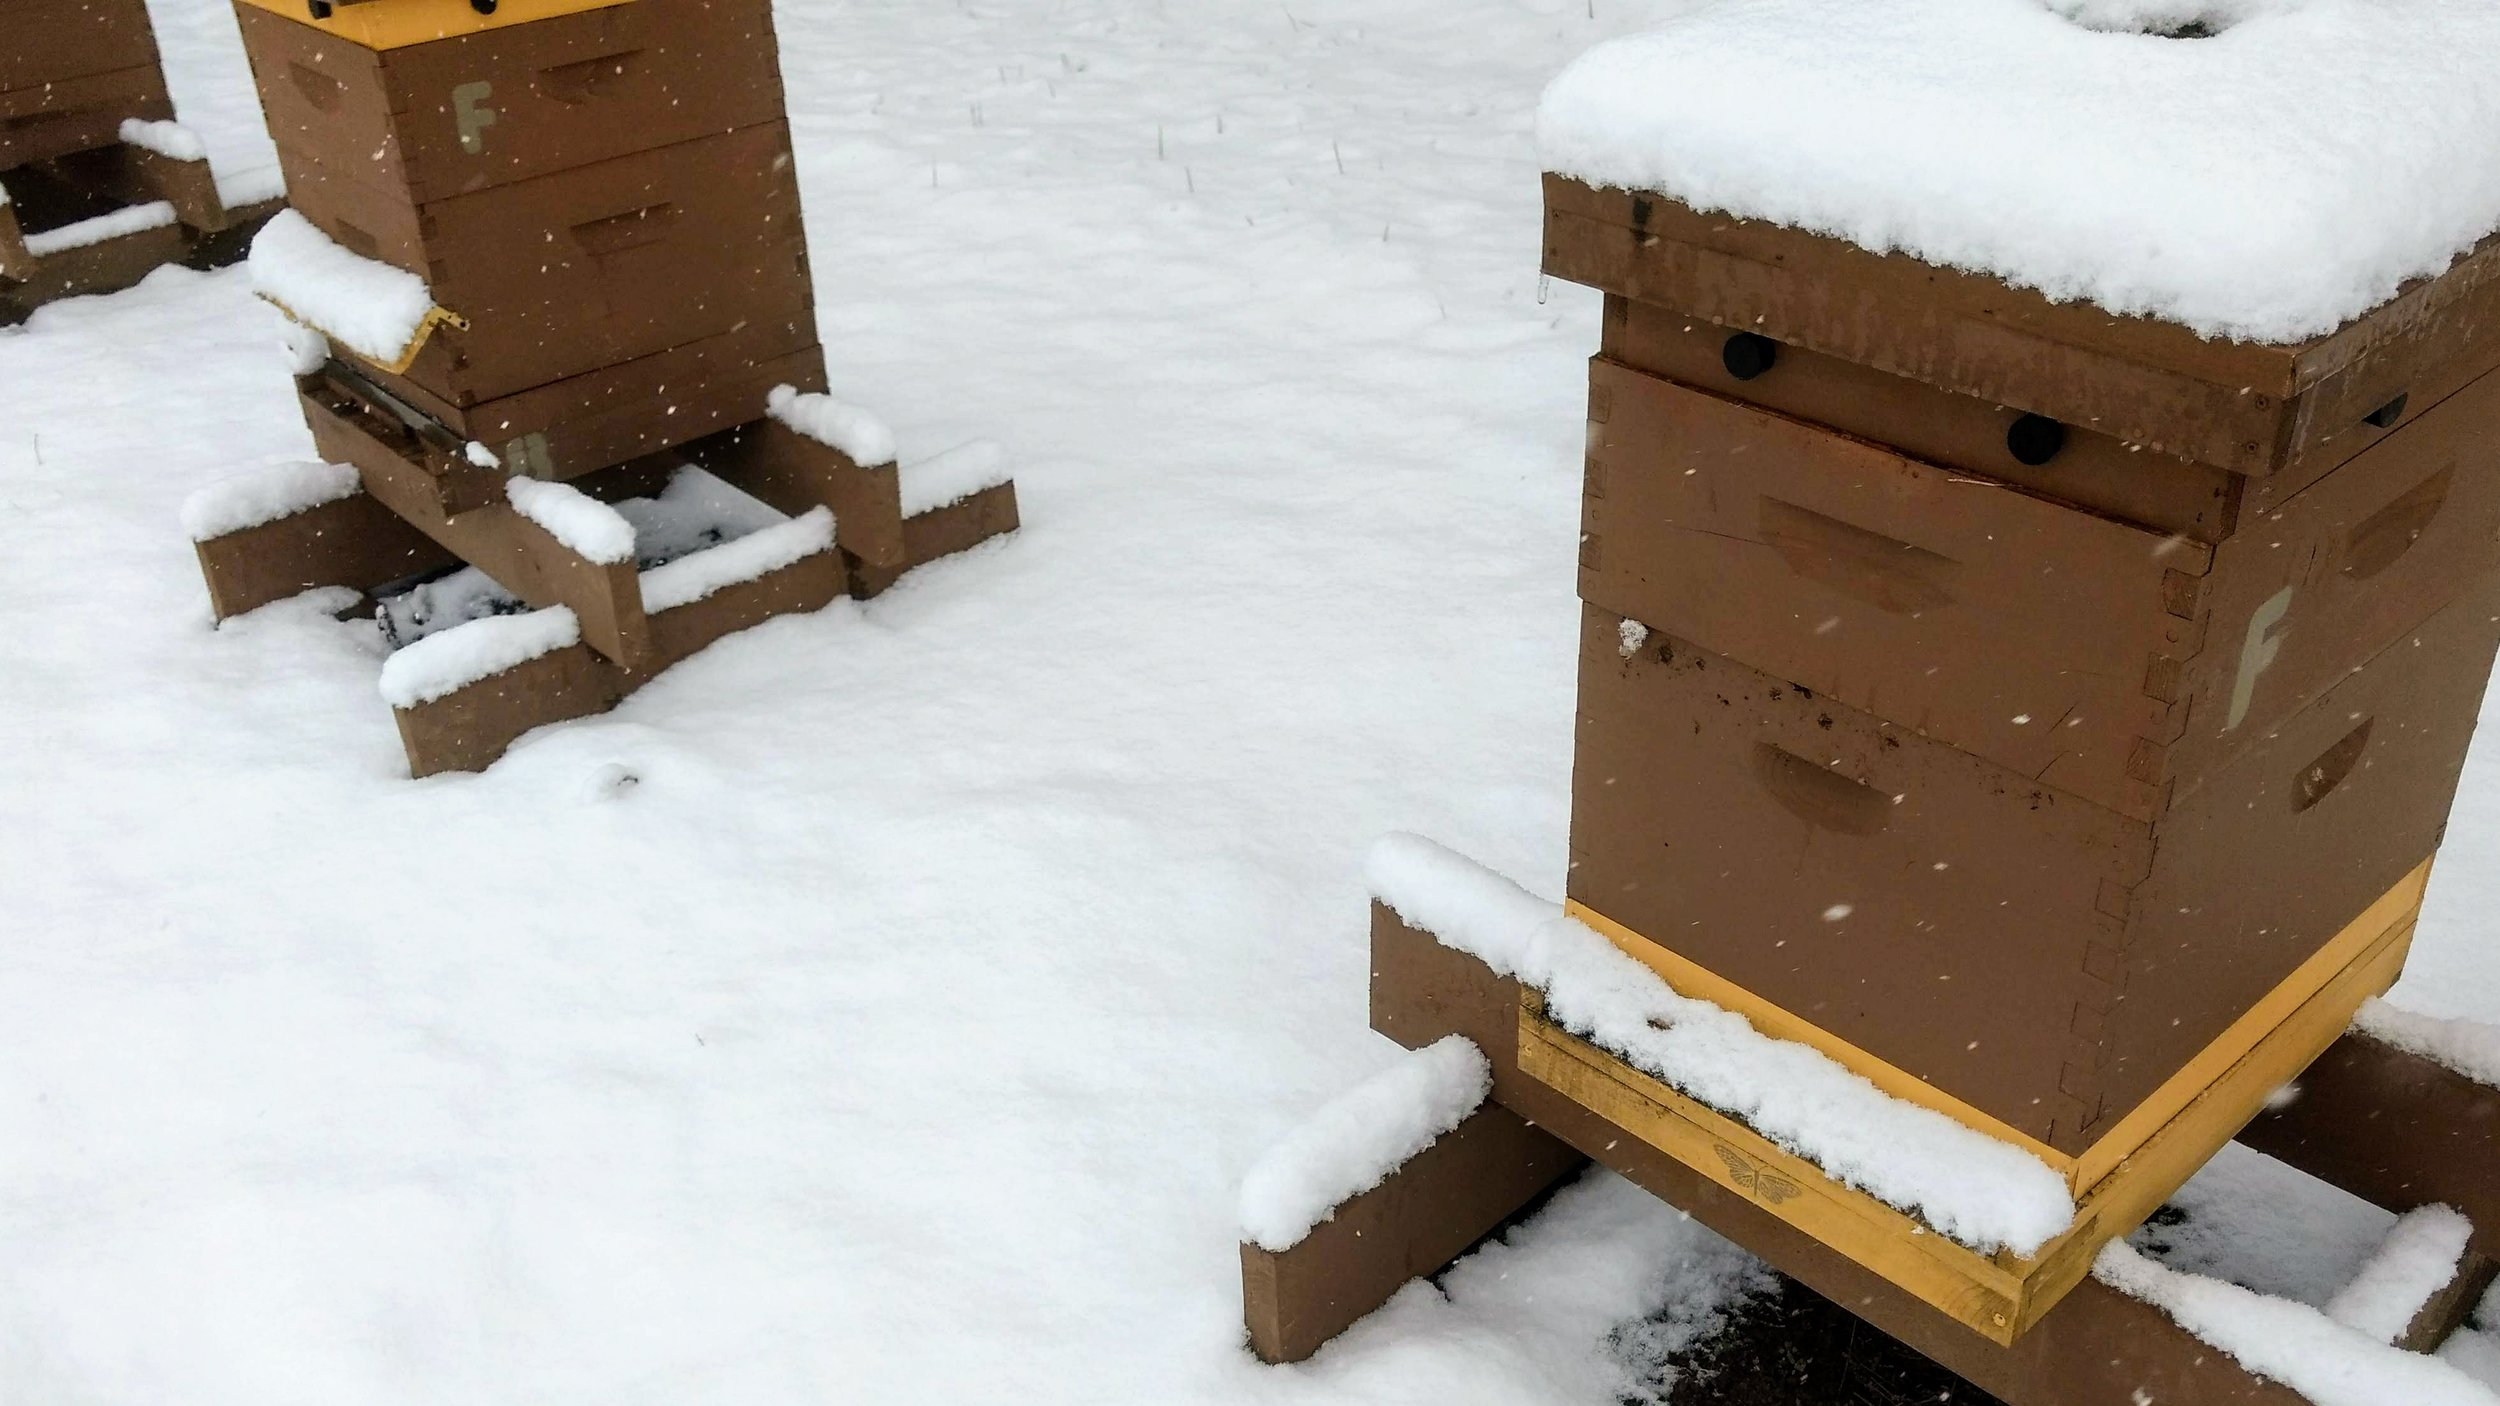 Hive with a snow visor on the left, without on the right